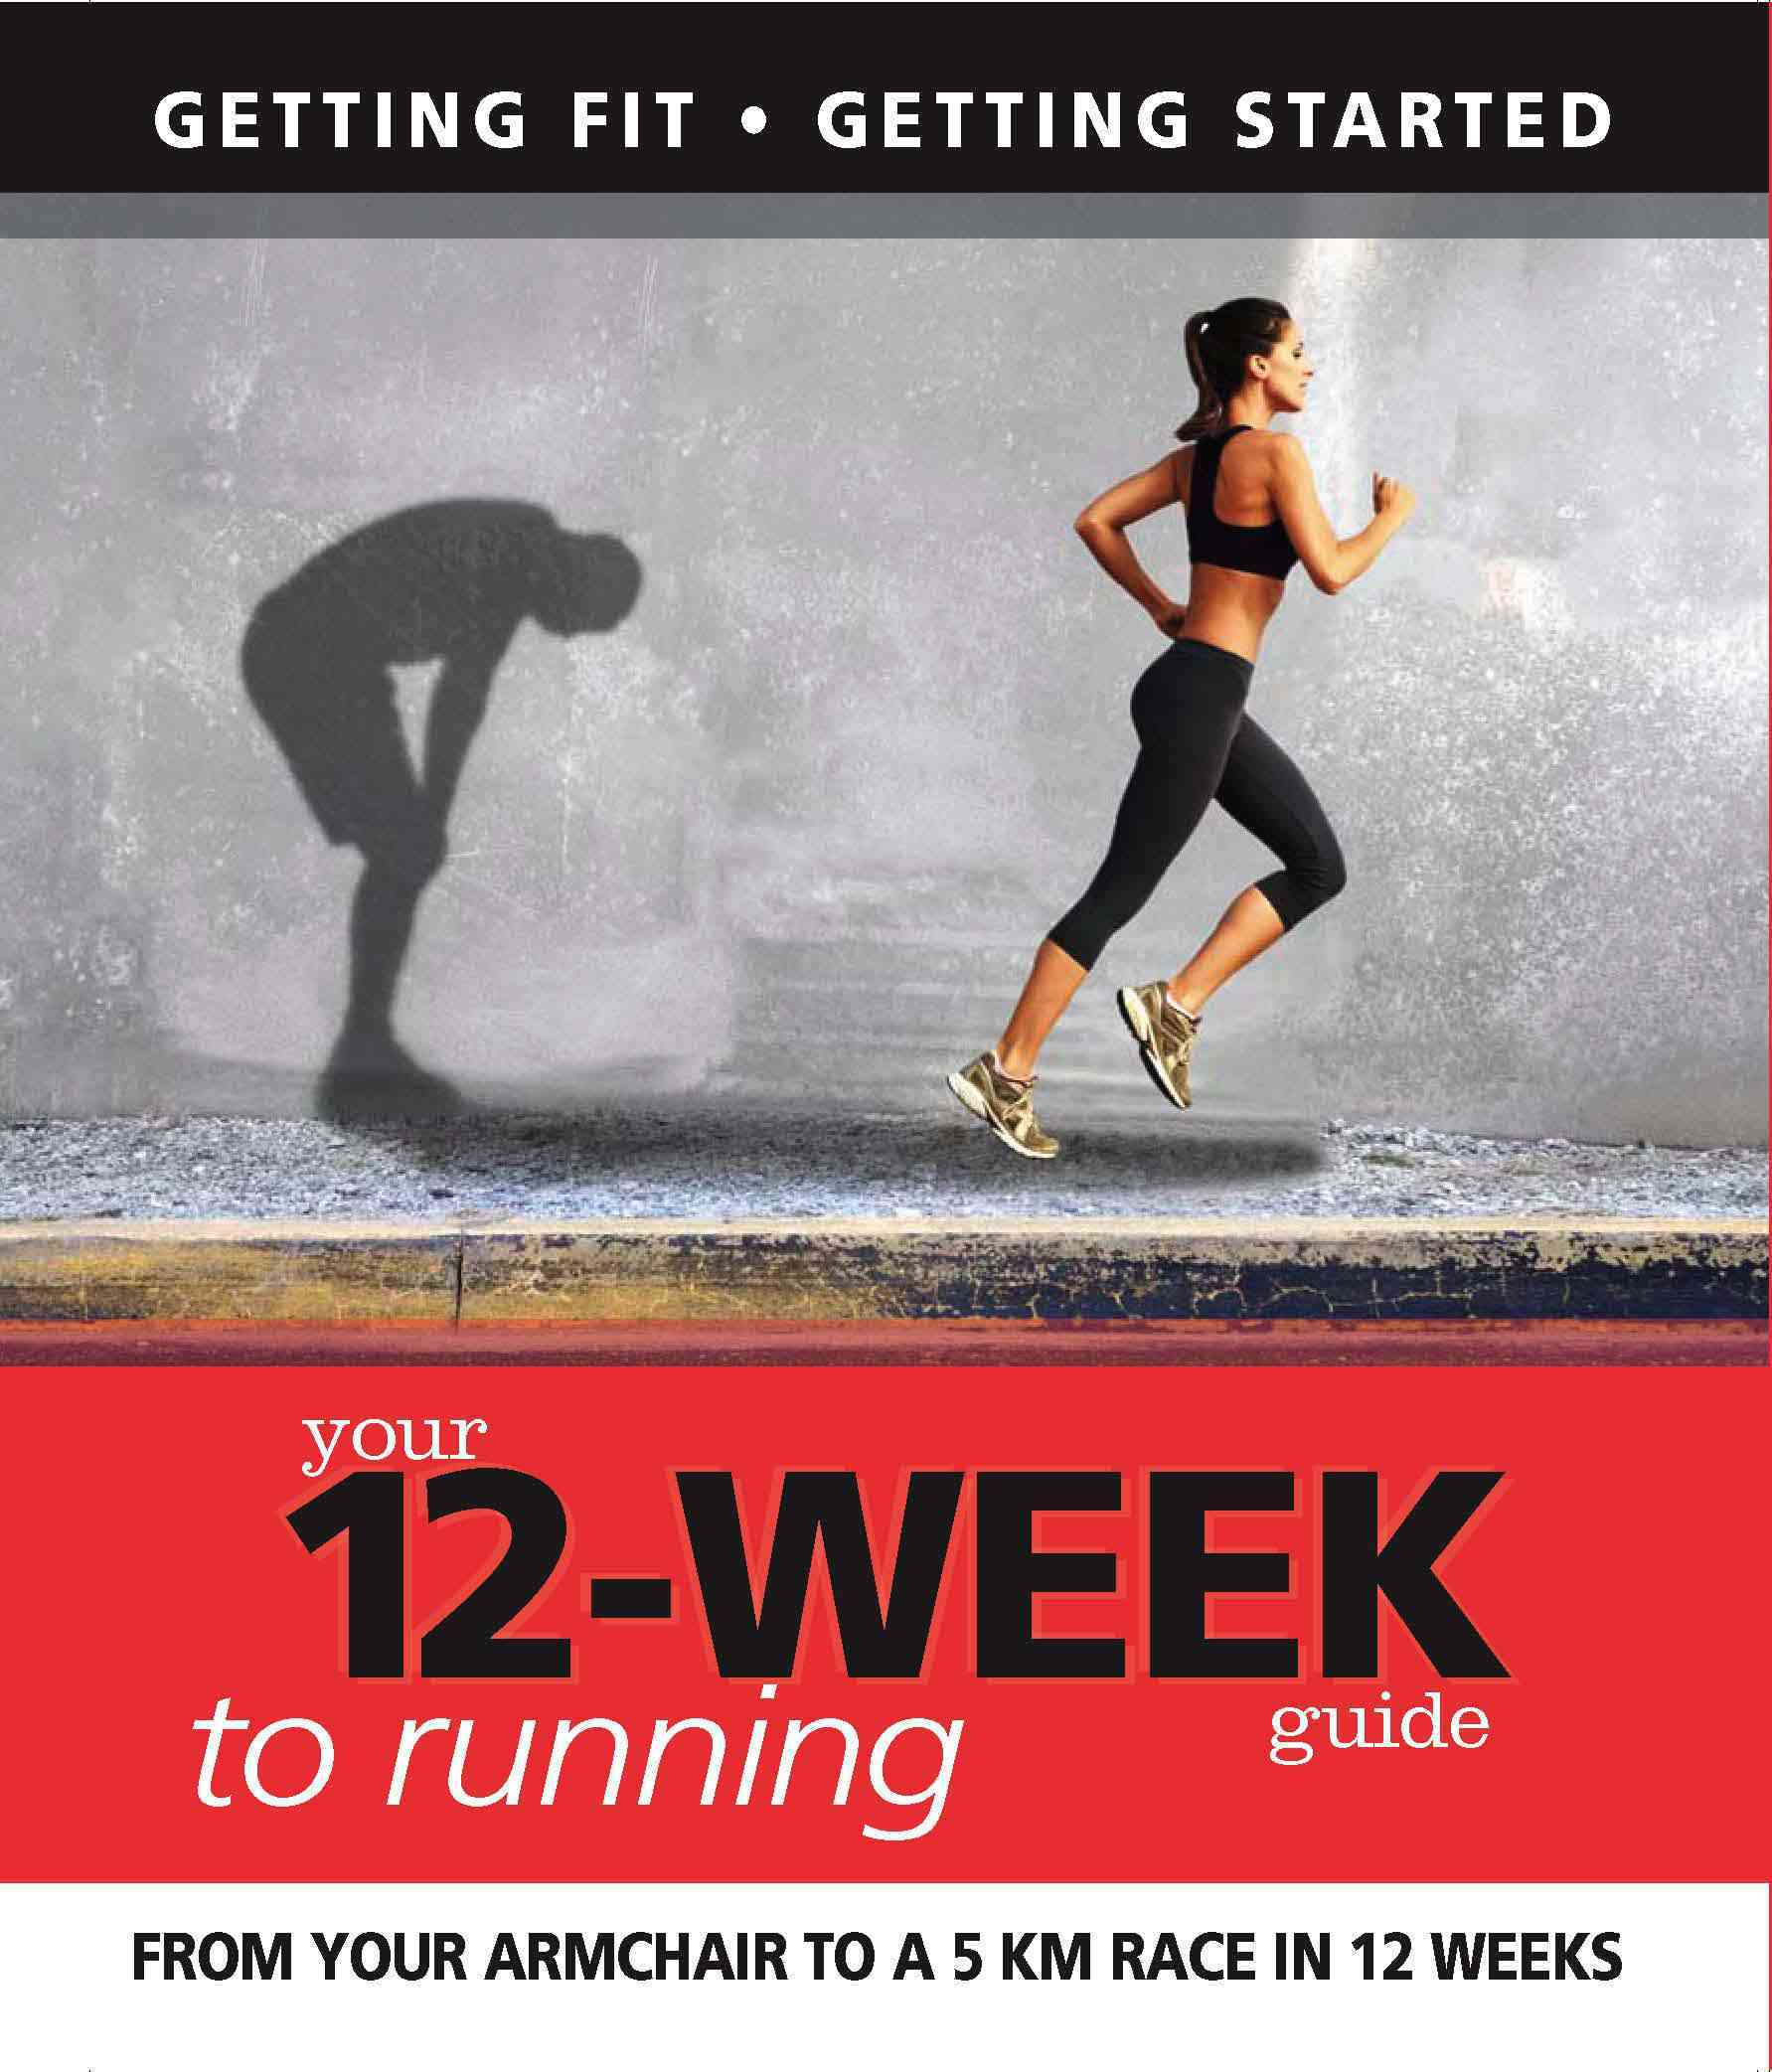 Your 12 Week Guide to Running: From Your Armchair to a 5 Km Race in 12 Weeks (Paperback)